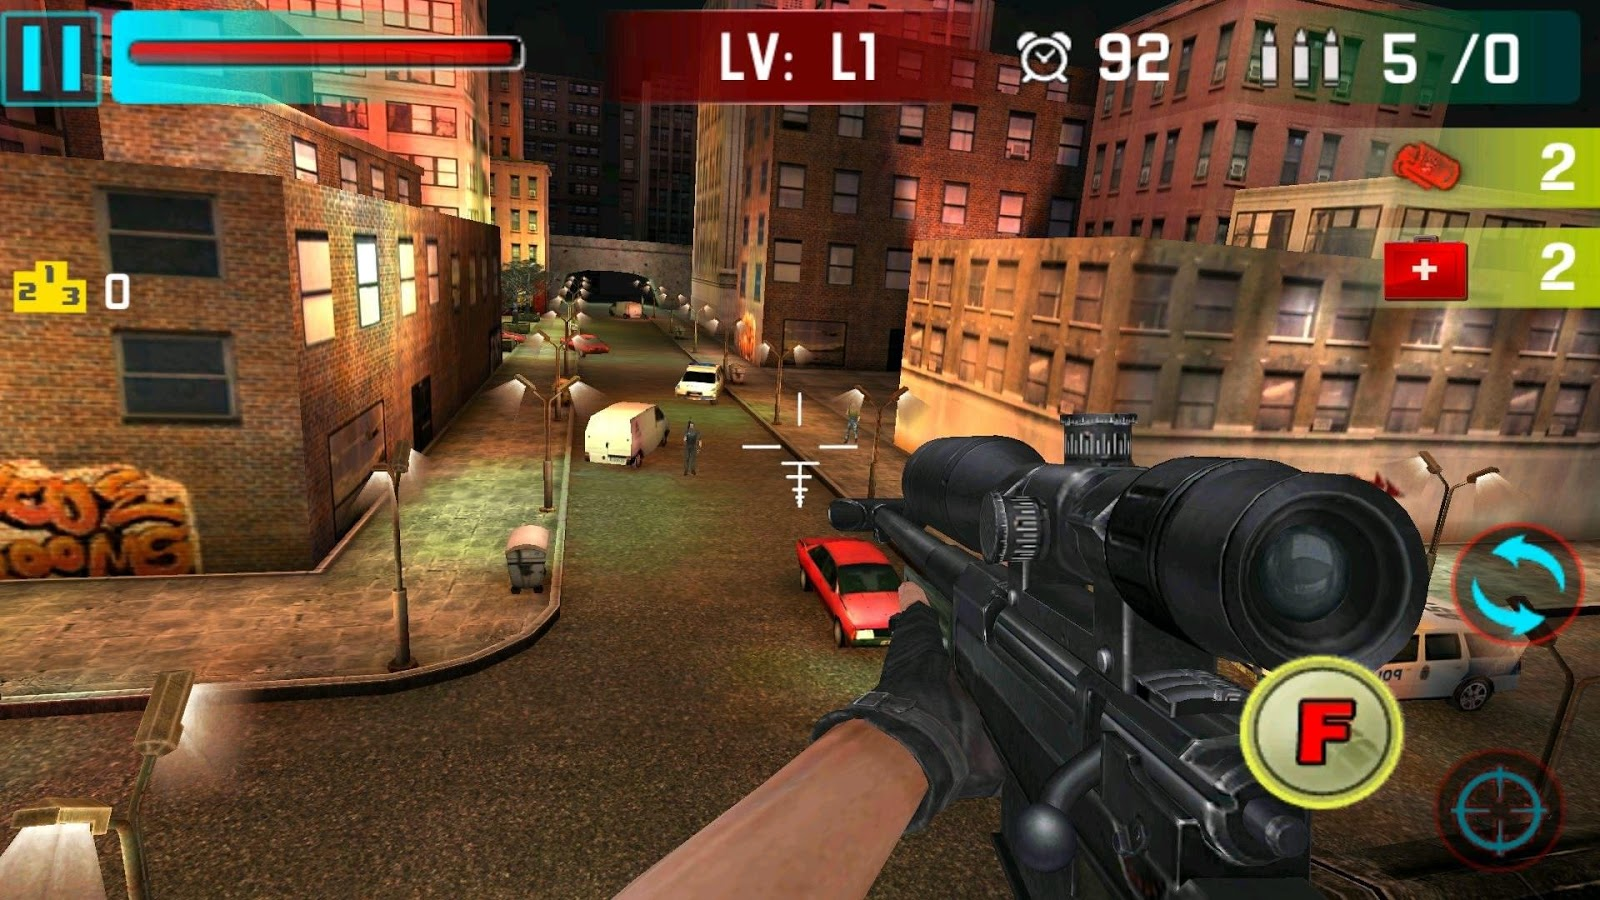 action games on google play store